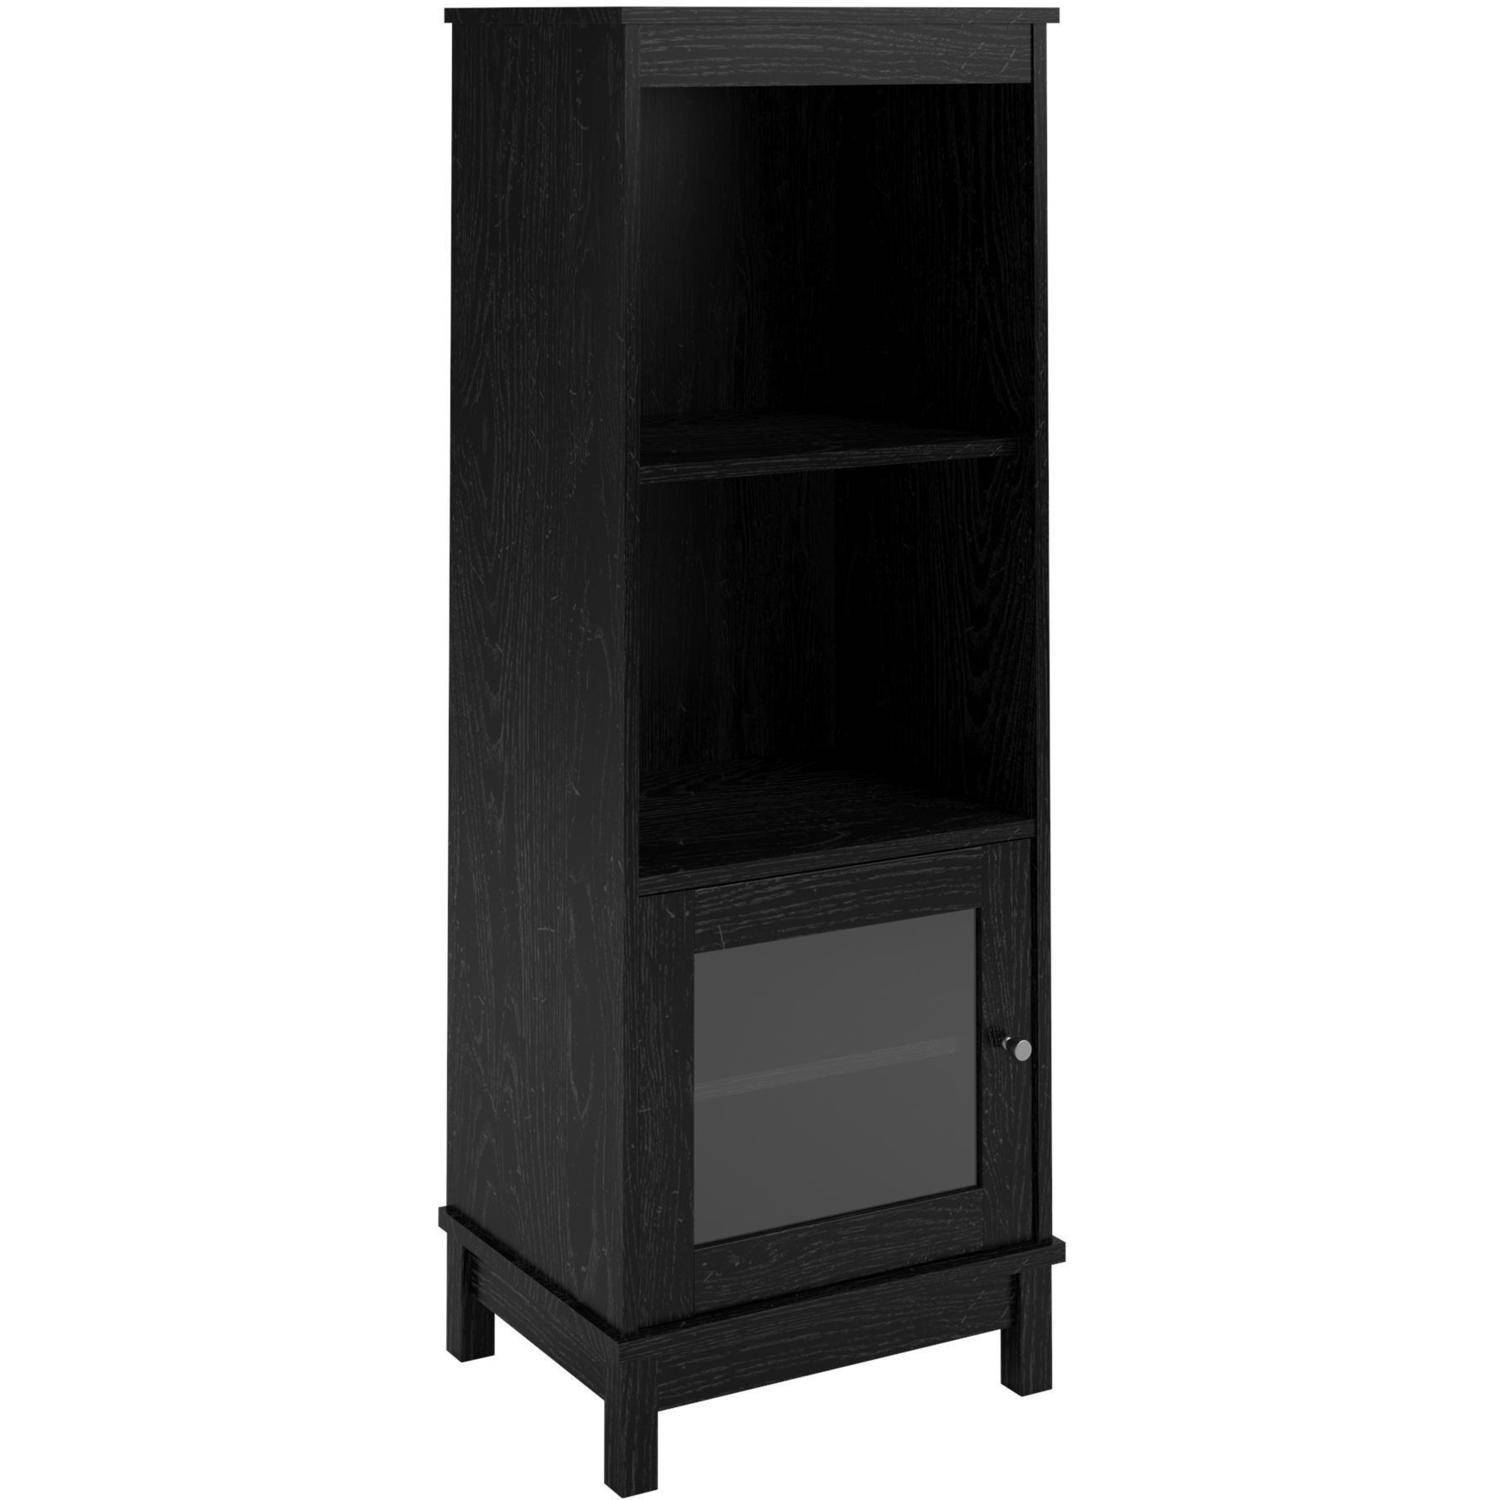 Mainstays media storage bookcase multiple finishes walmart eventelaan Image collections